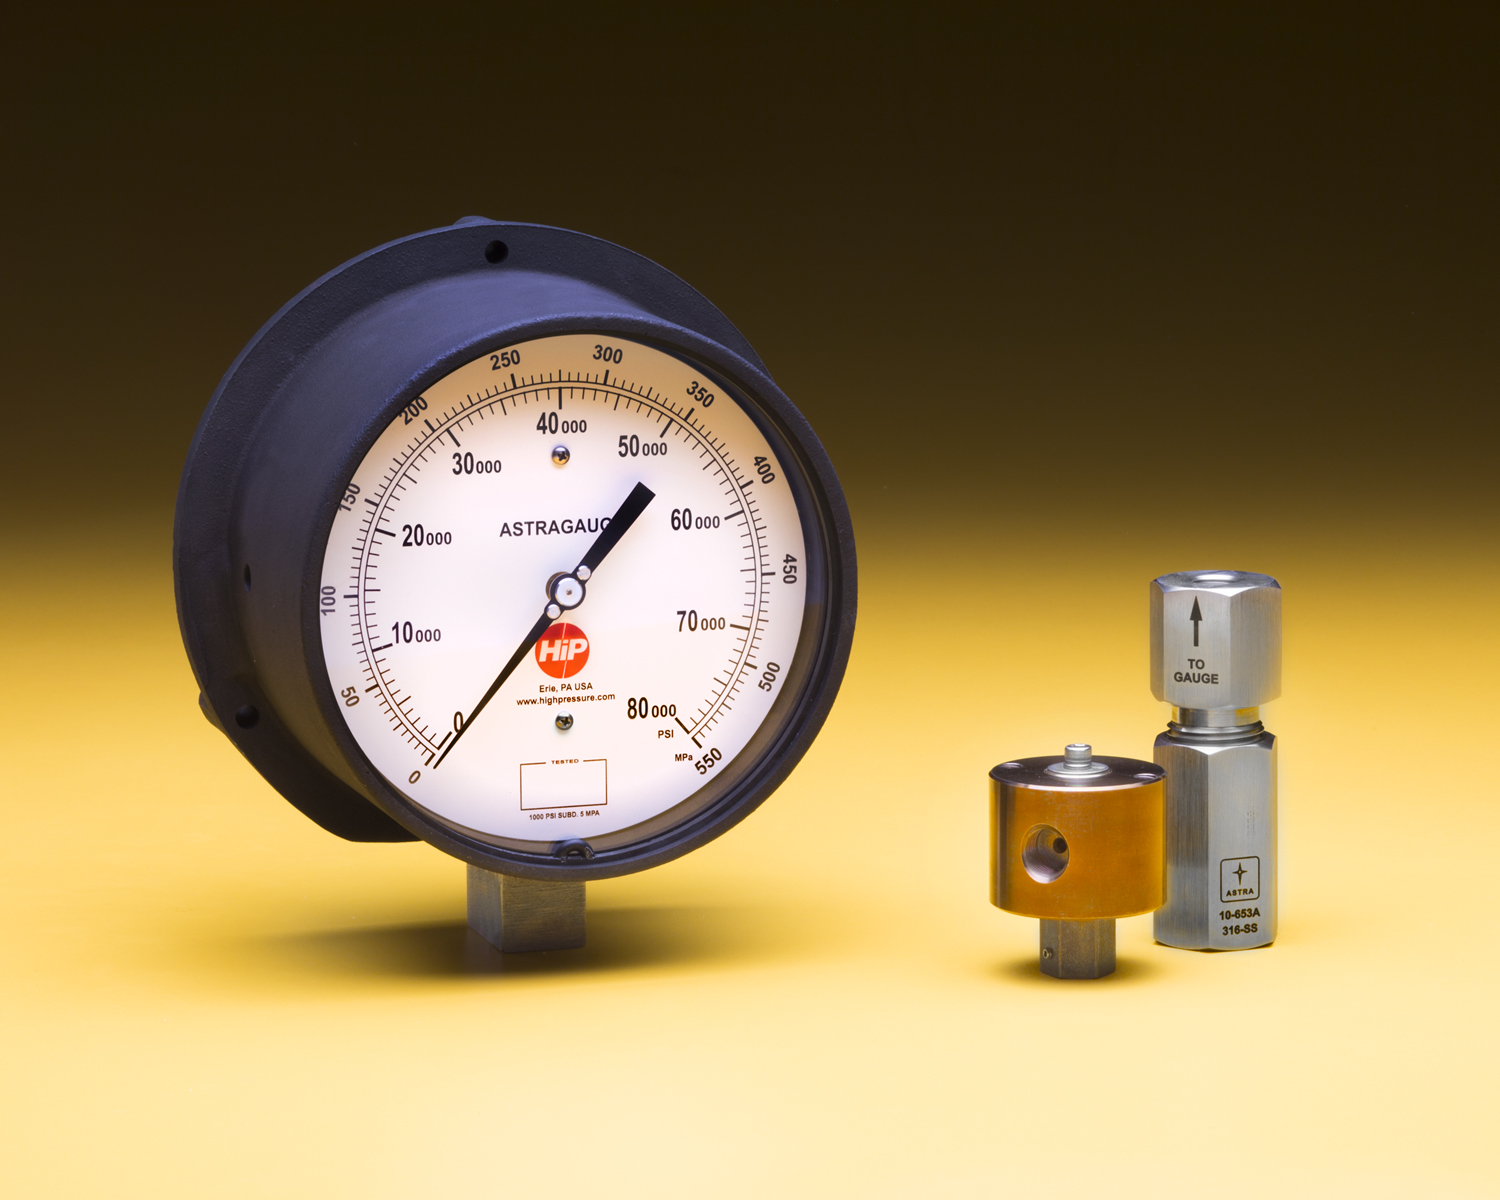 Pressure Gauges Accommodate Pressures up to 150,000 psi